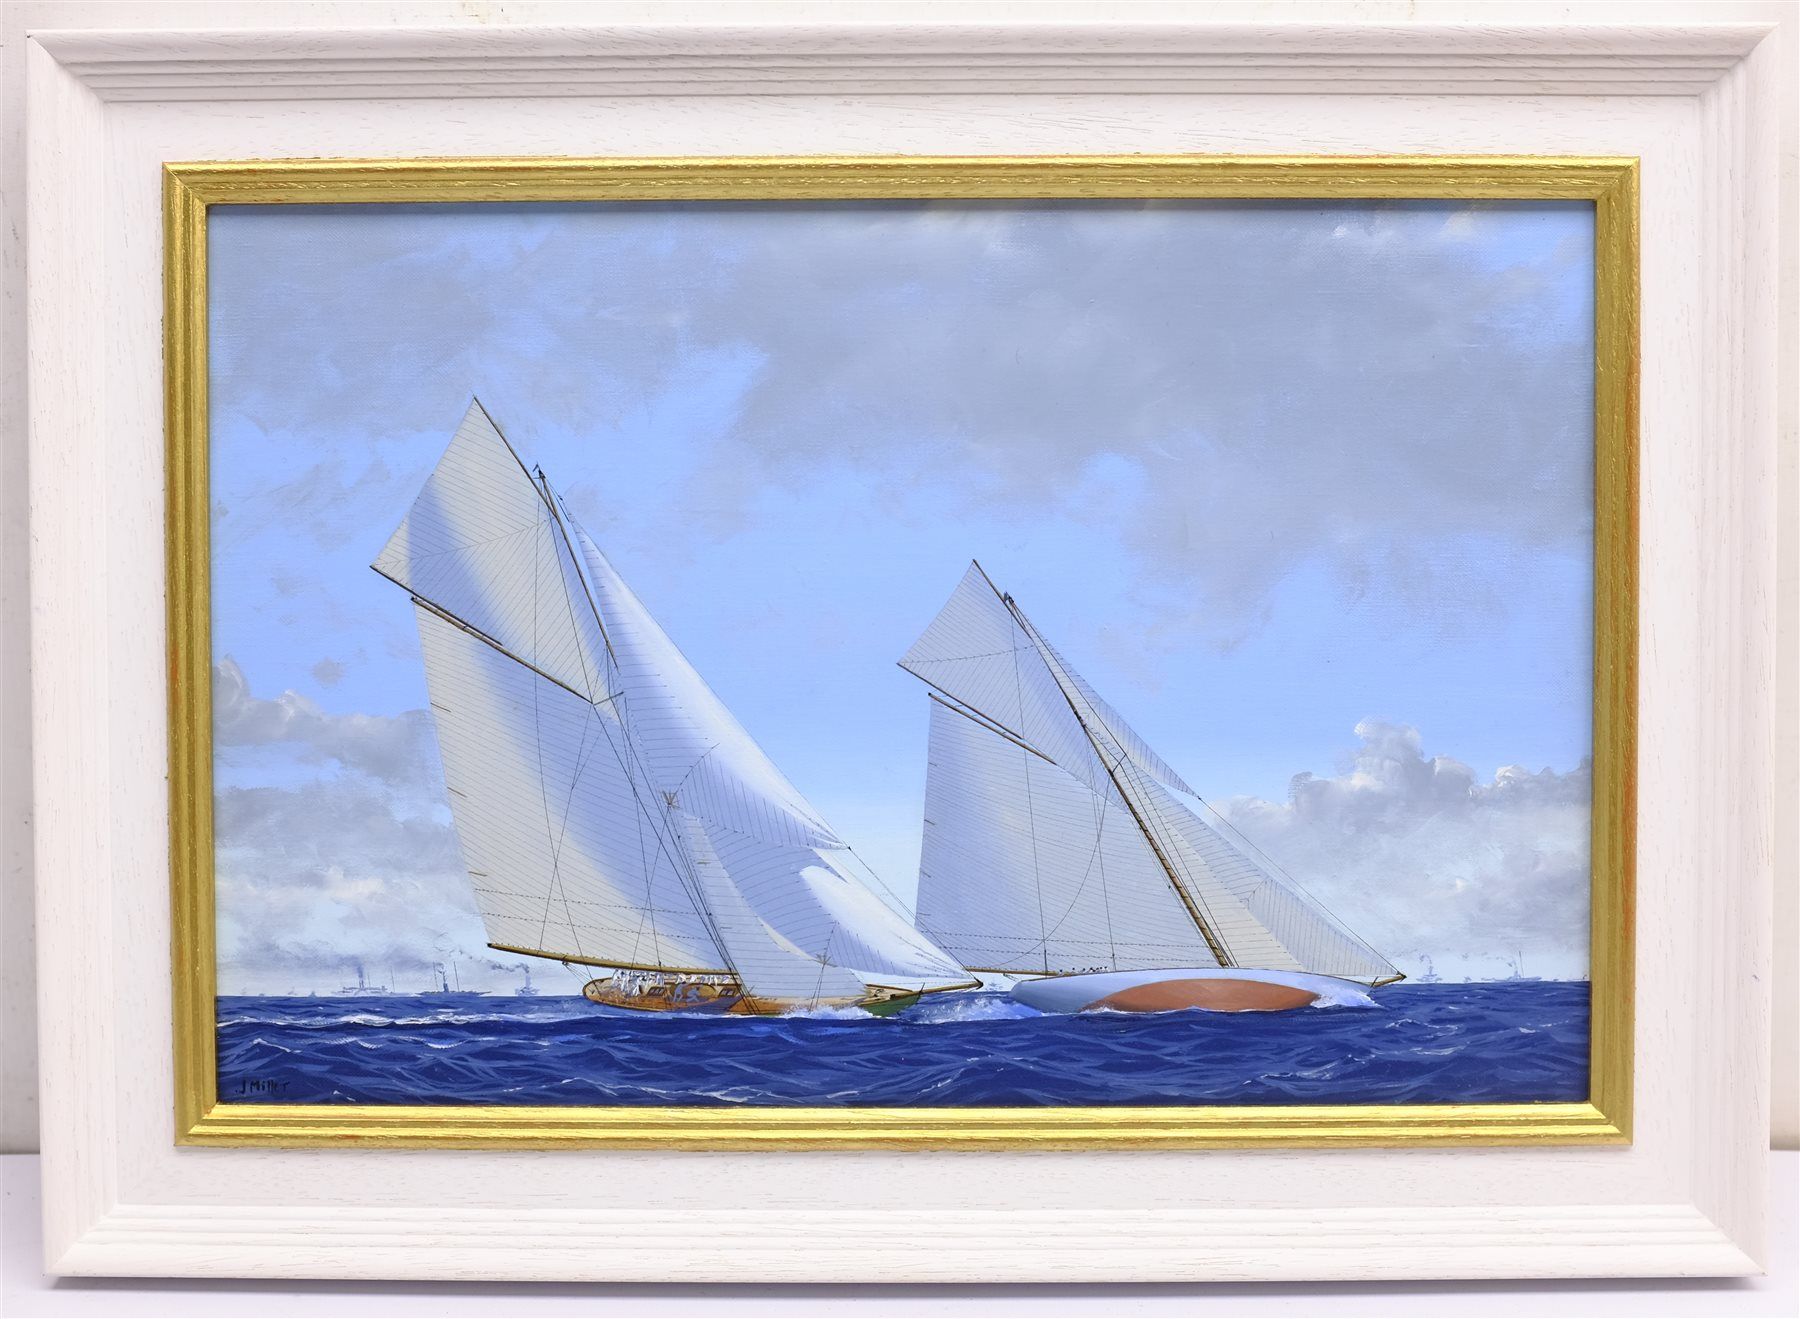 James Miller (British 1962-): 'Shamrock II' & 'Columbia' in the America's Cup Series 11th challenge - Image 3 of 4